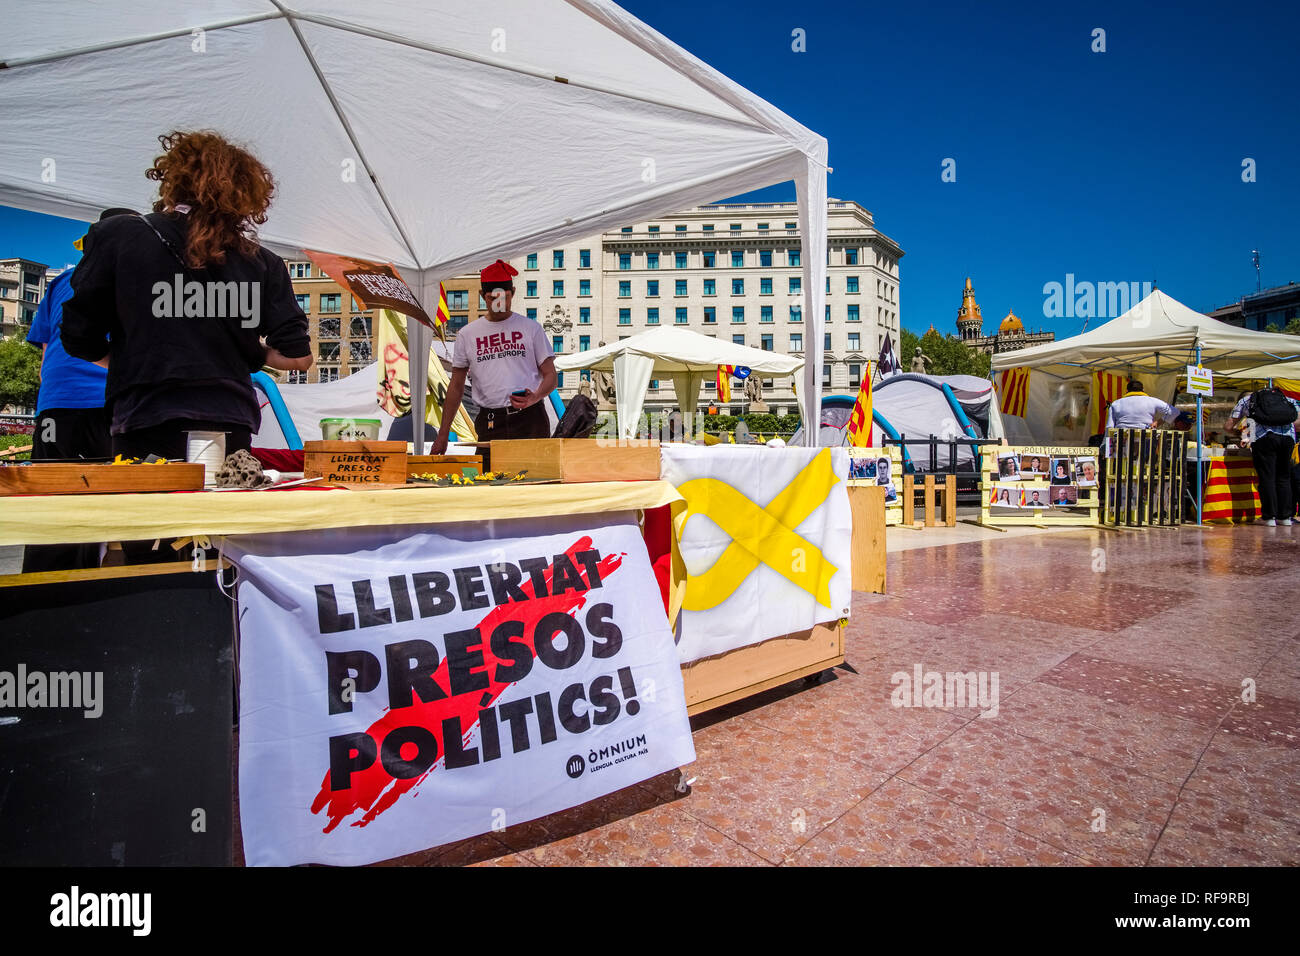 Protest for independence of Catalonia and freedom for political prisoners takes place at Plaça de Catalunya, Catalonia Square Stock Photo